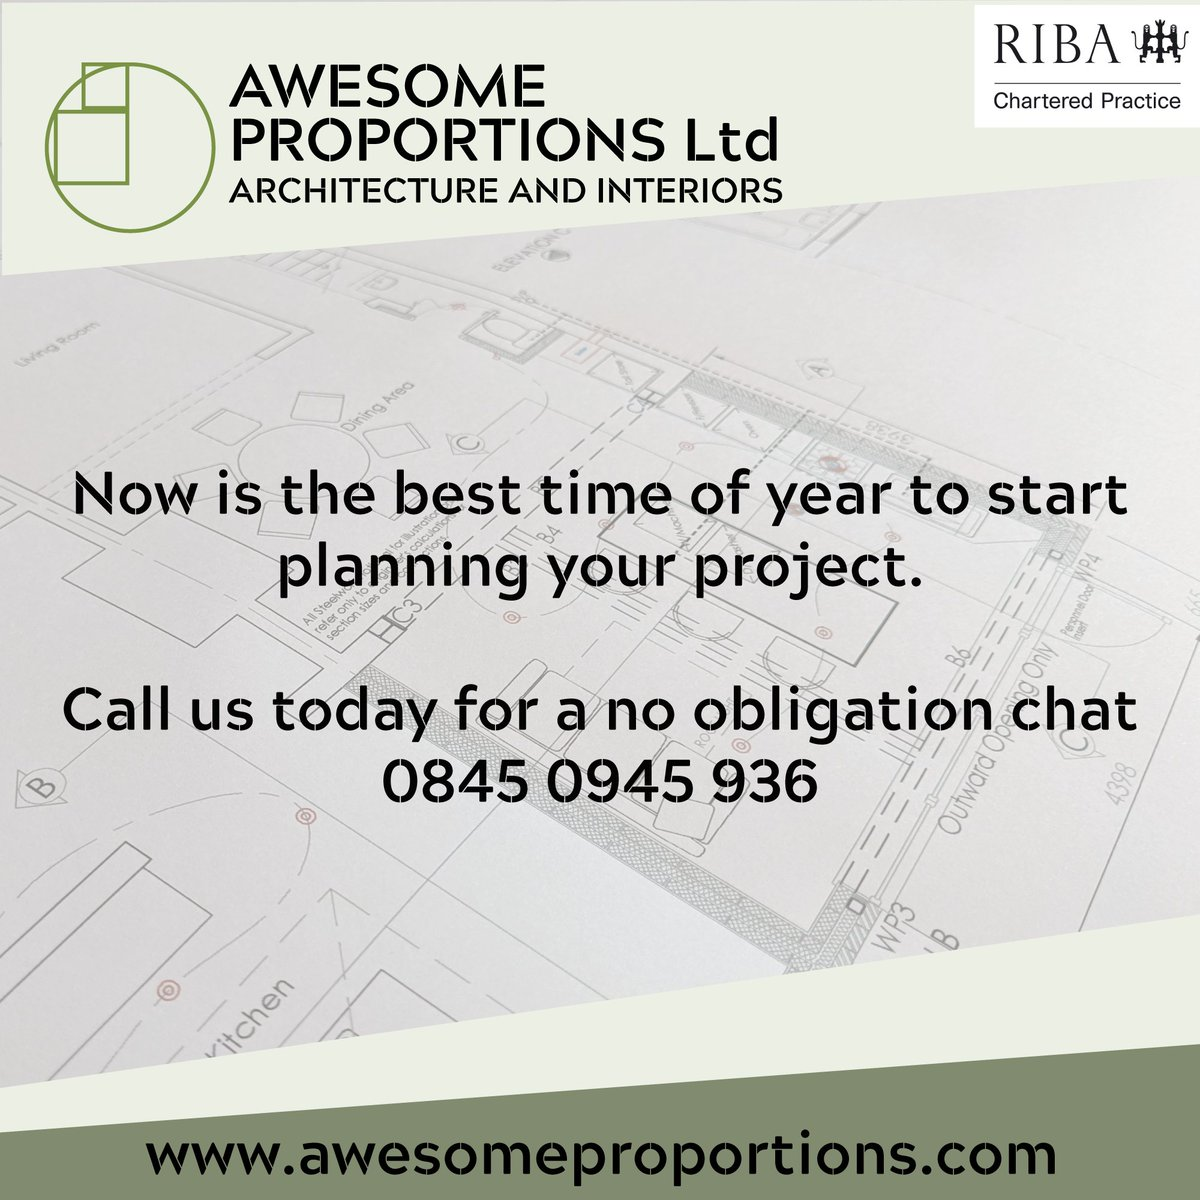 If it's an extension, loft conversion or new build, planning a project through Autumn gives you the best opportunity to start building in the Spring. The early bird catches the best contractors for the best prices. #hull #eastyorkshire #York https://t.co/T0qAZgpx1E